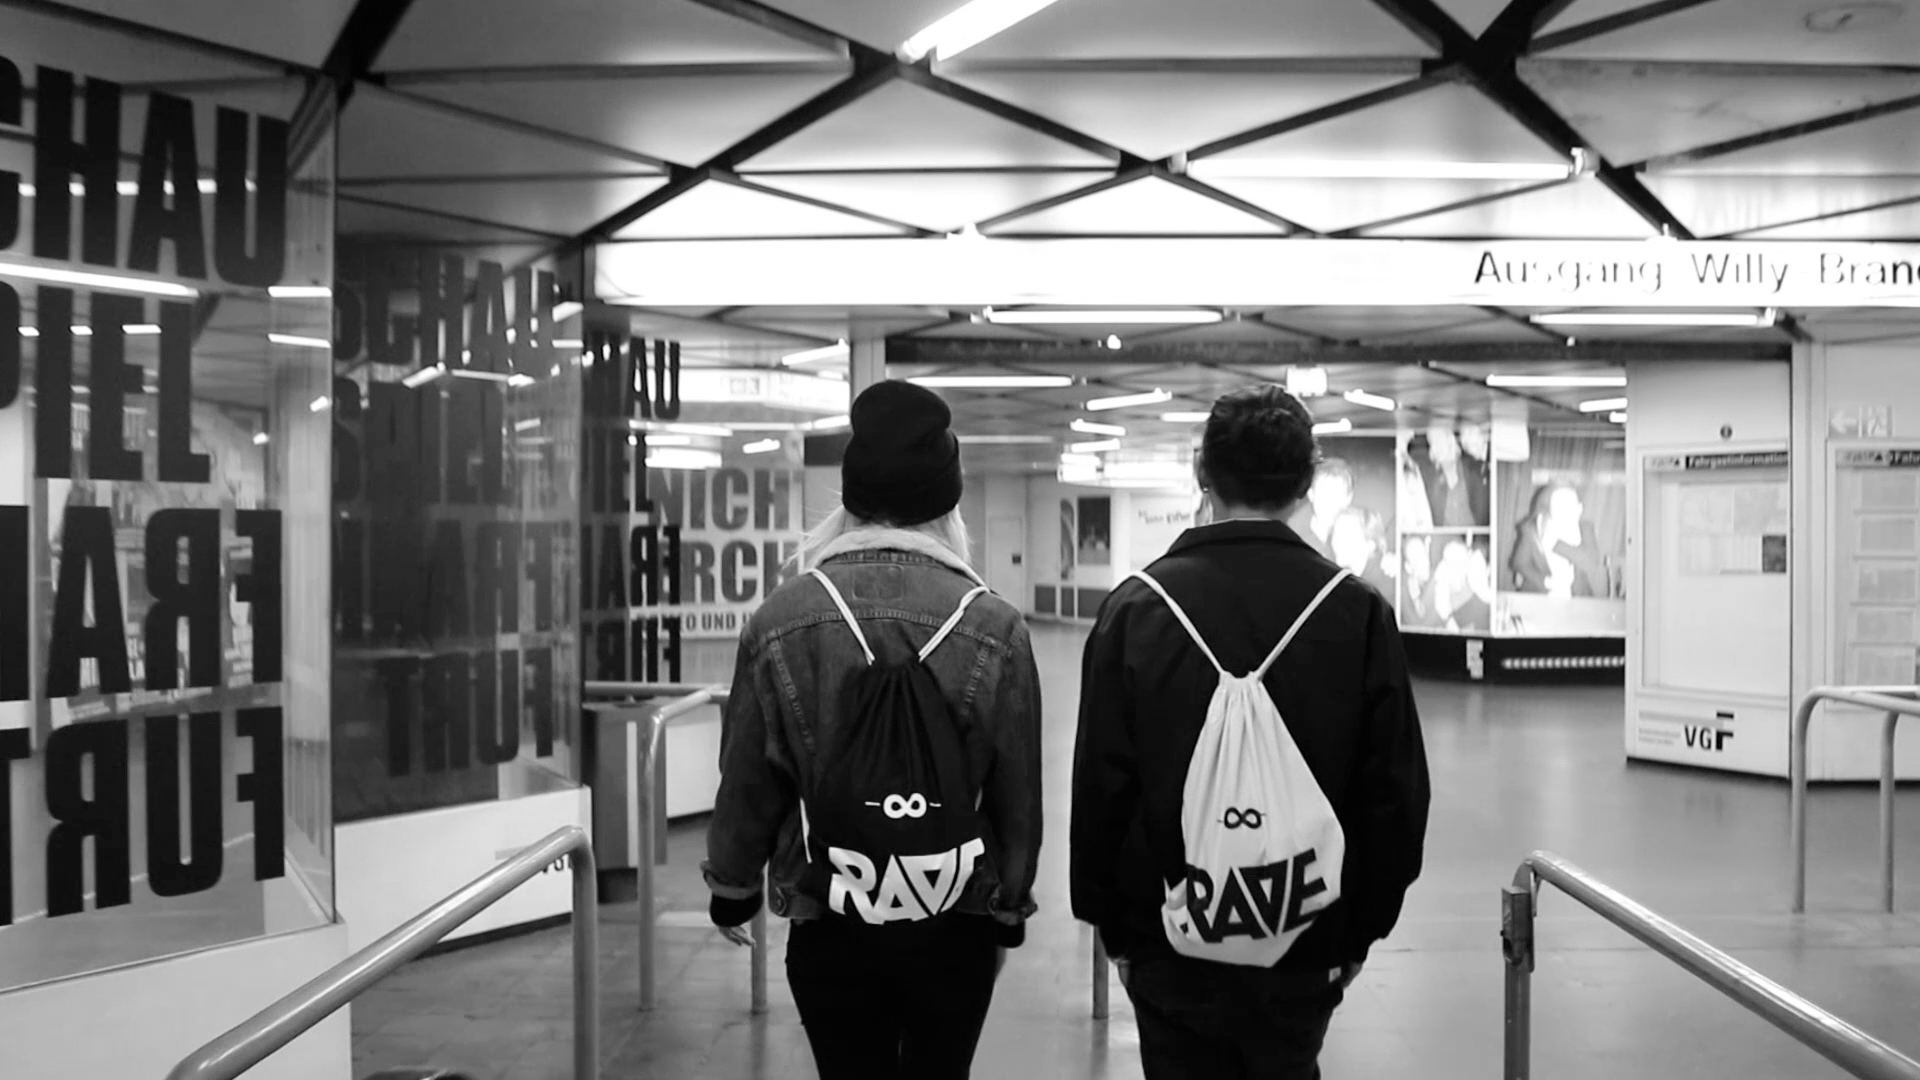 rave-clothing-frankfurt-01